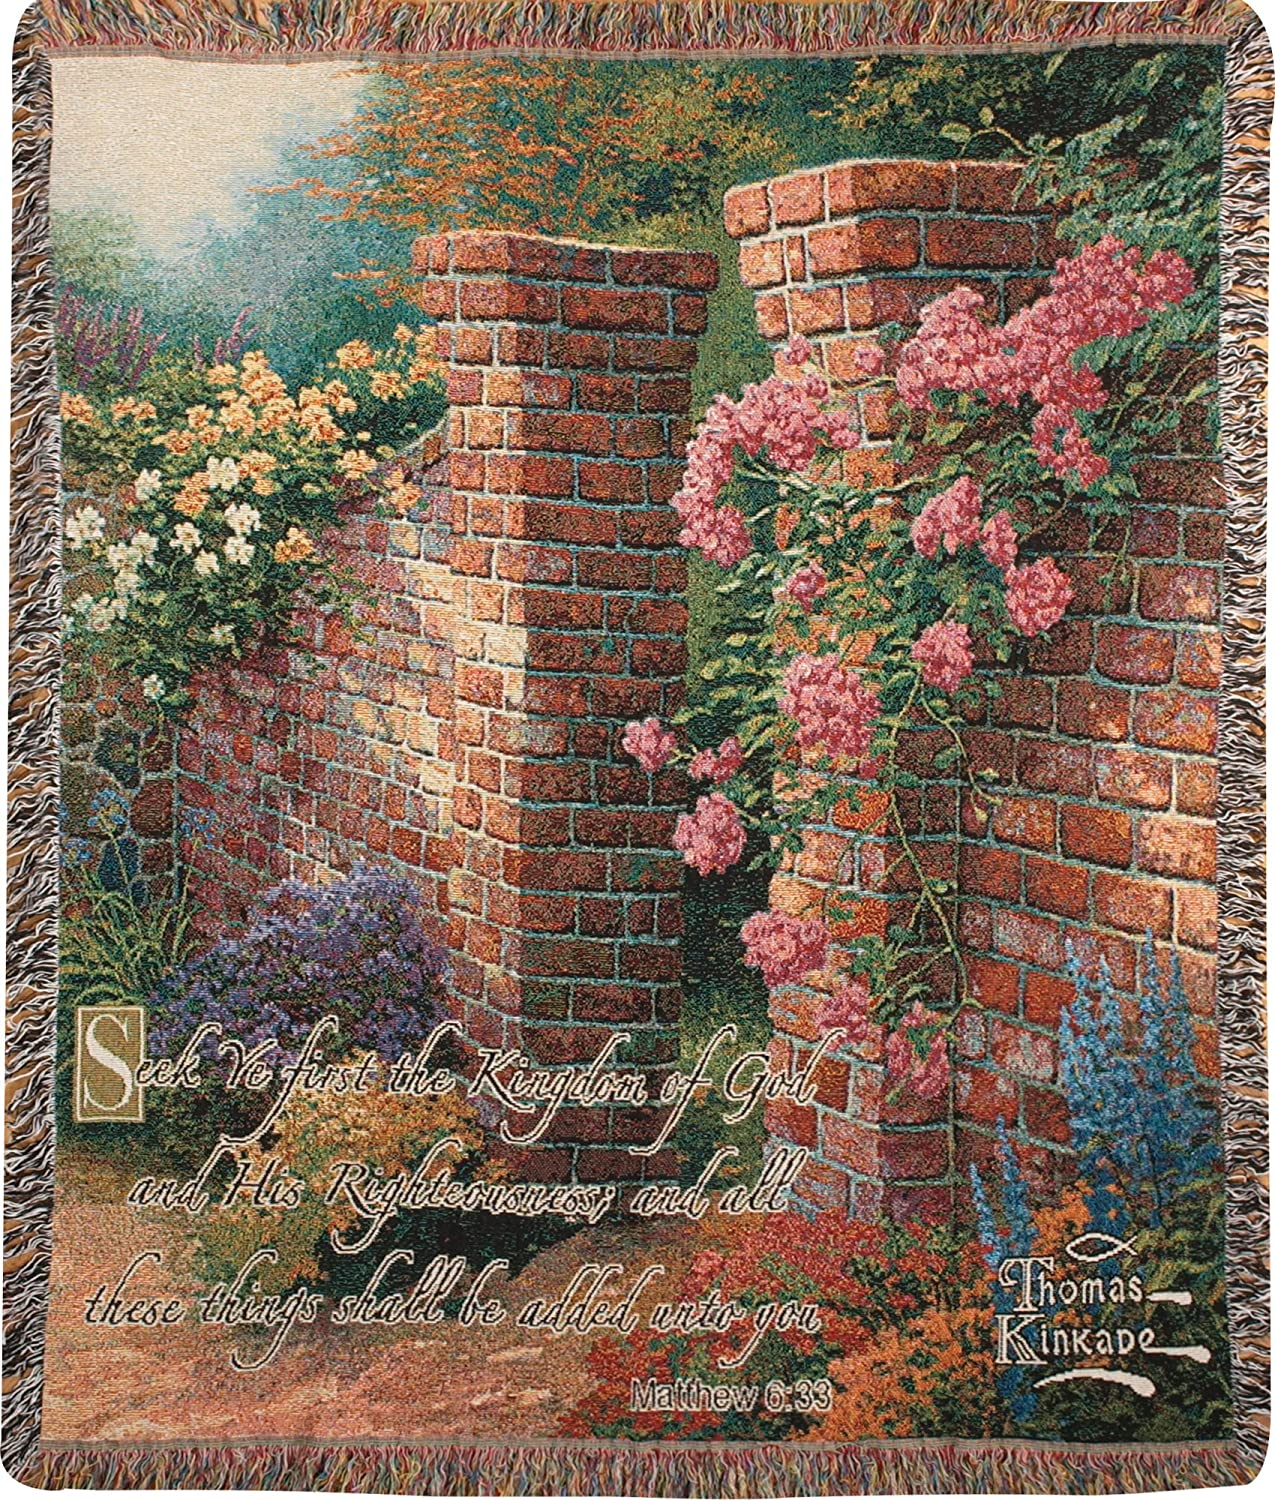 Manual Thomas Kinkade 50 x 60-Inch Tapestry Throw with Verse, Rose Garden